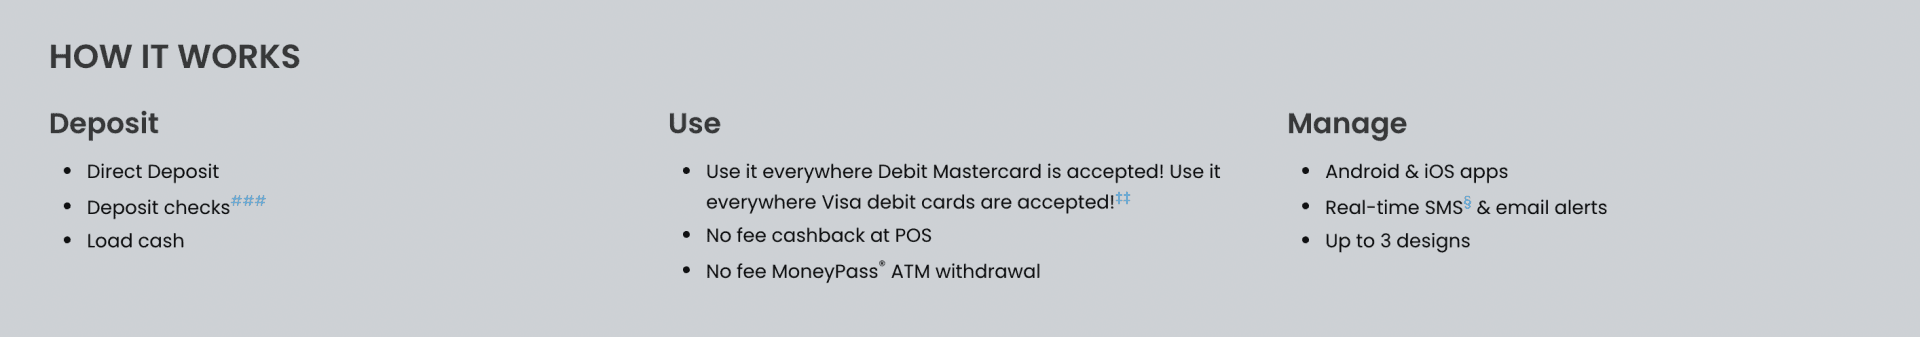 CARD Review: Is The Prepaid Card With The Simplest Name Right For You? - How it works